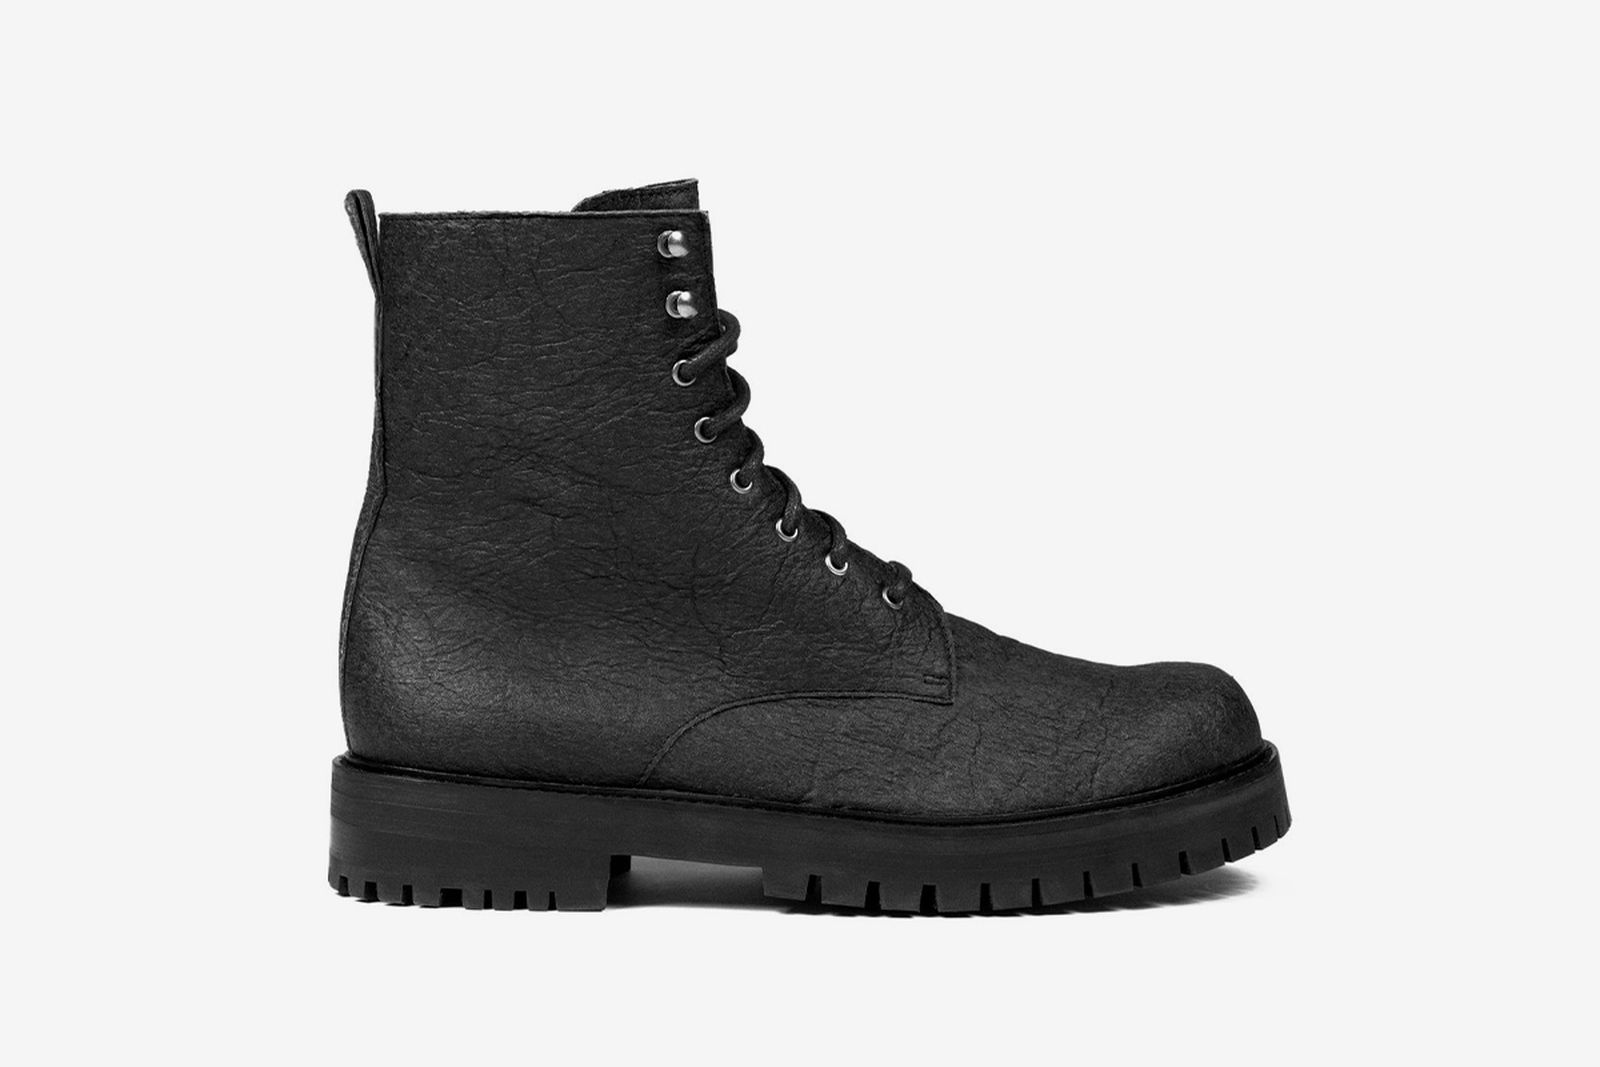 ground-cover-boots-price-release-date-02